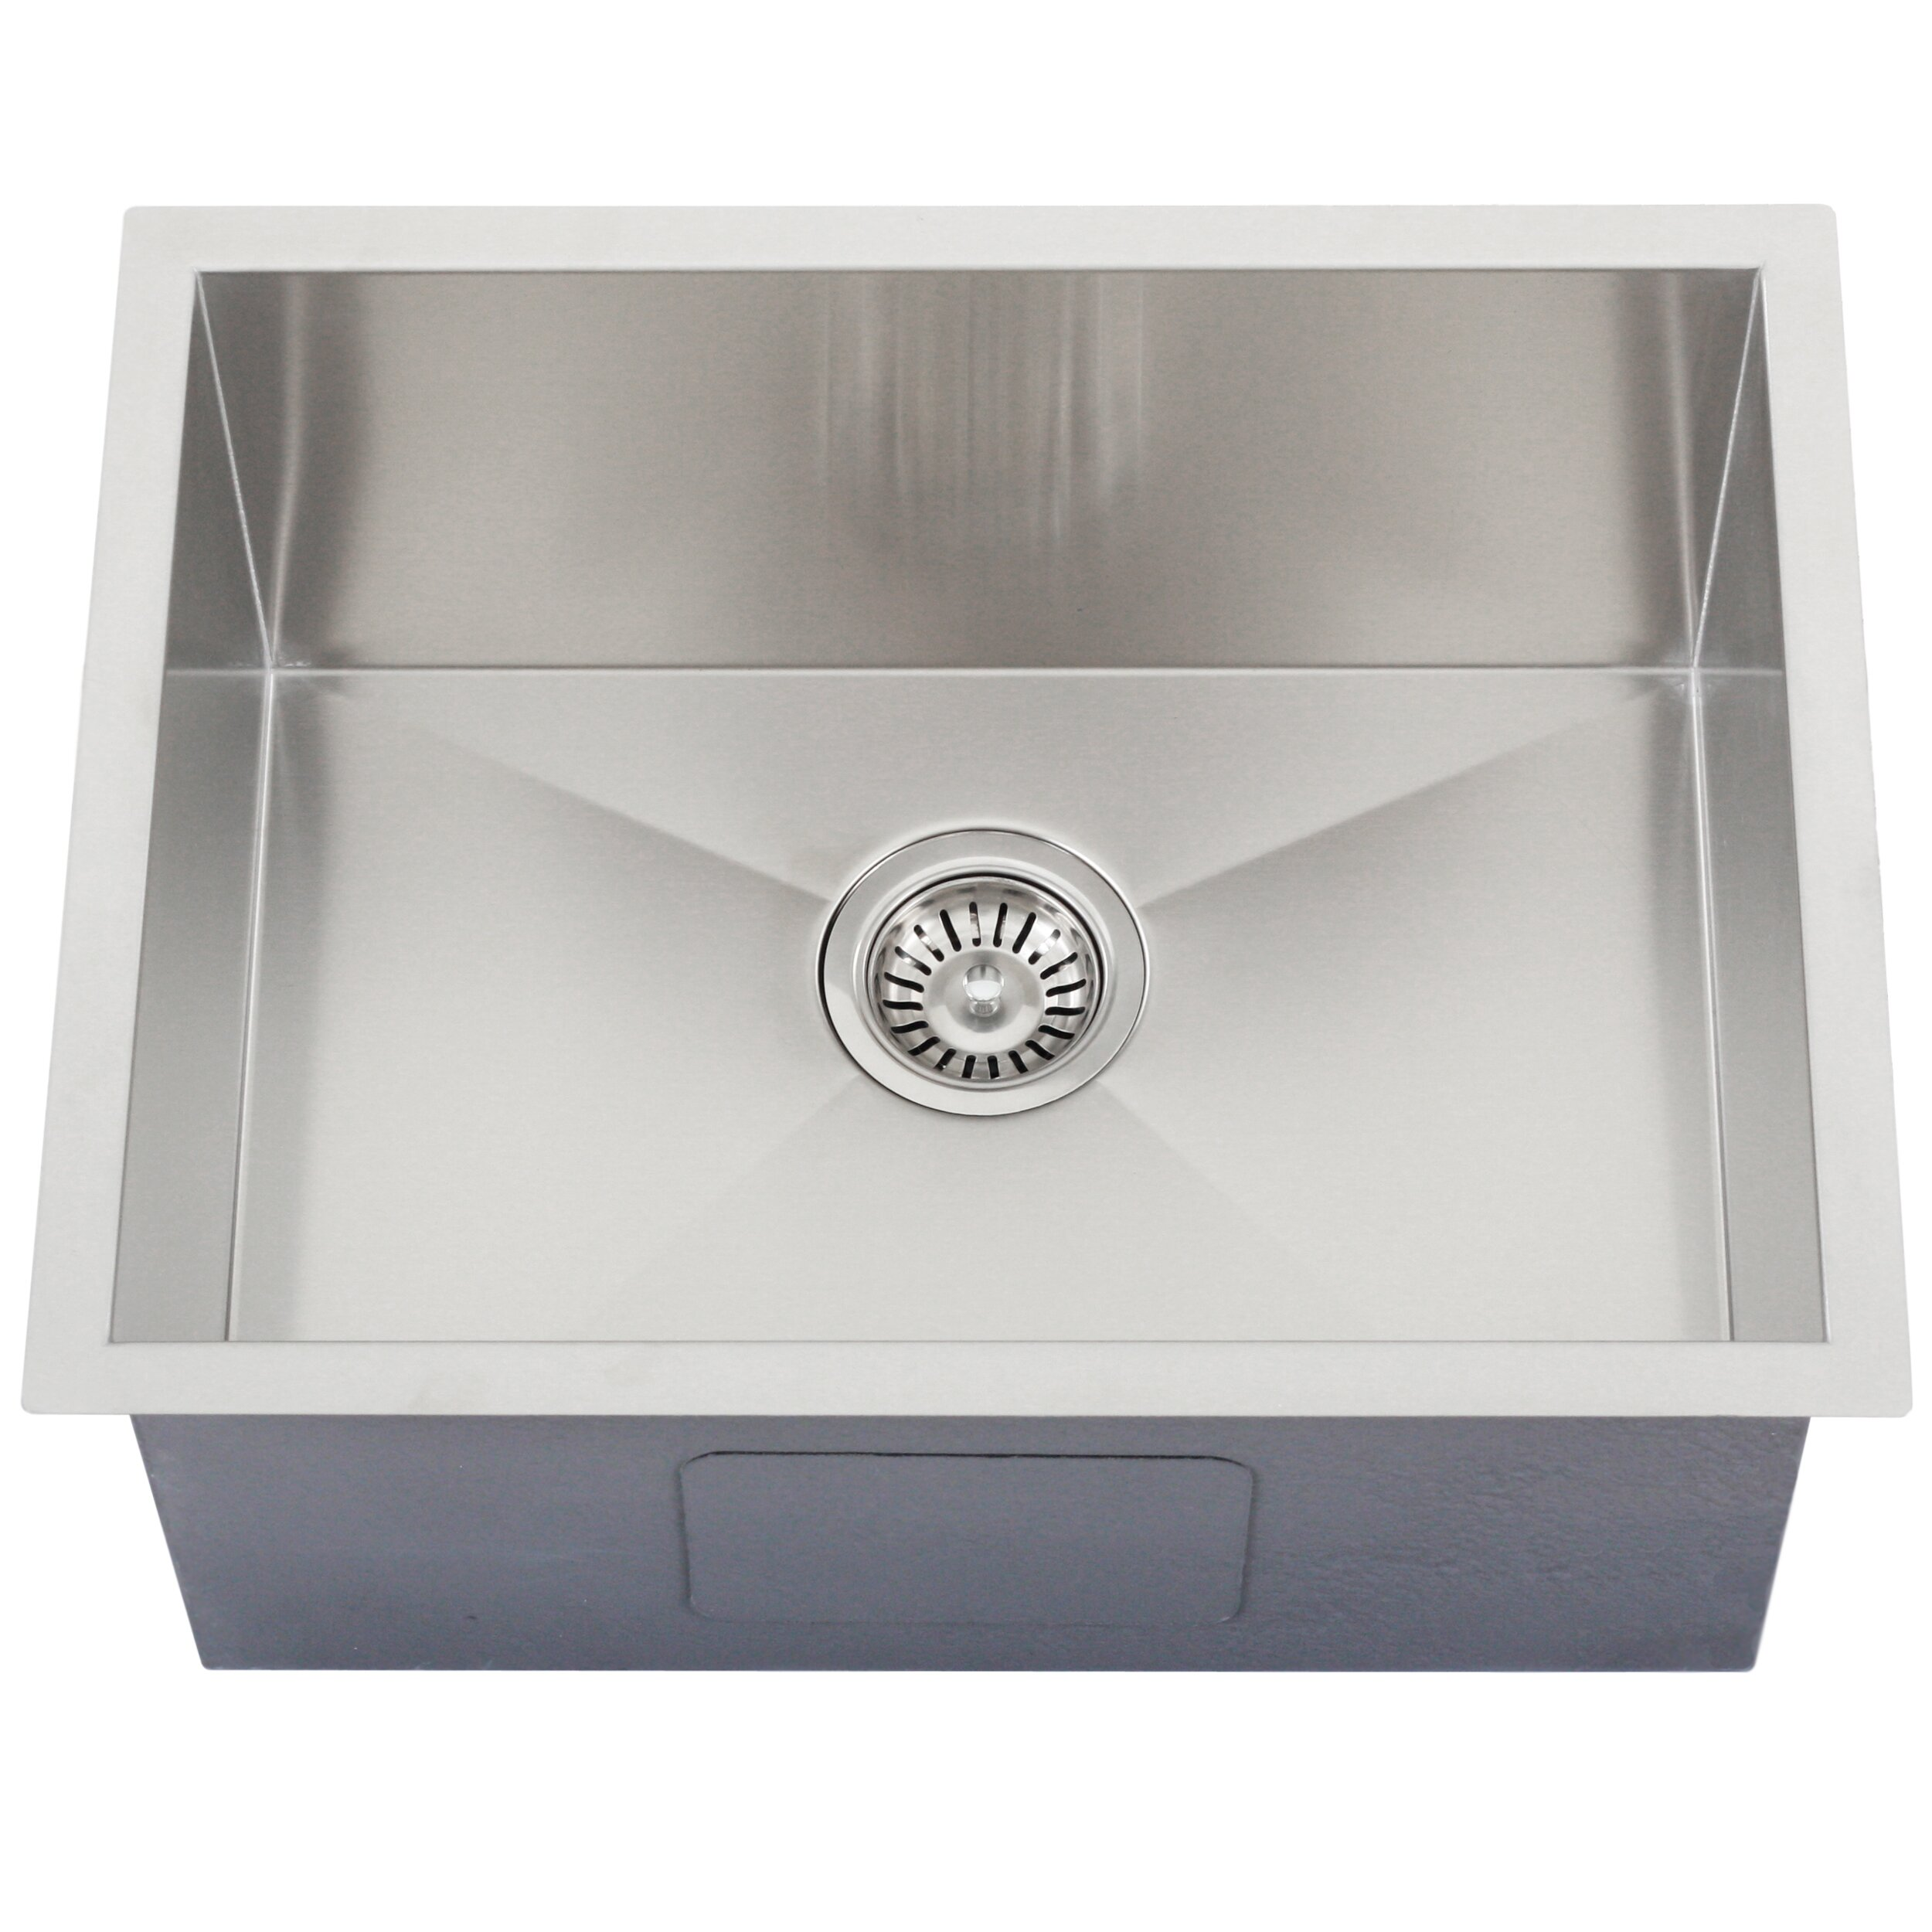 Ticor Stainless Steel Kitchen Sink